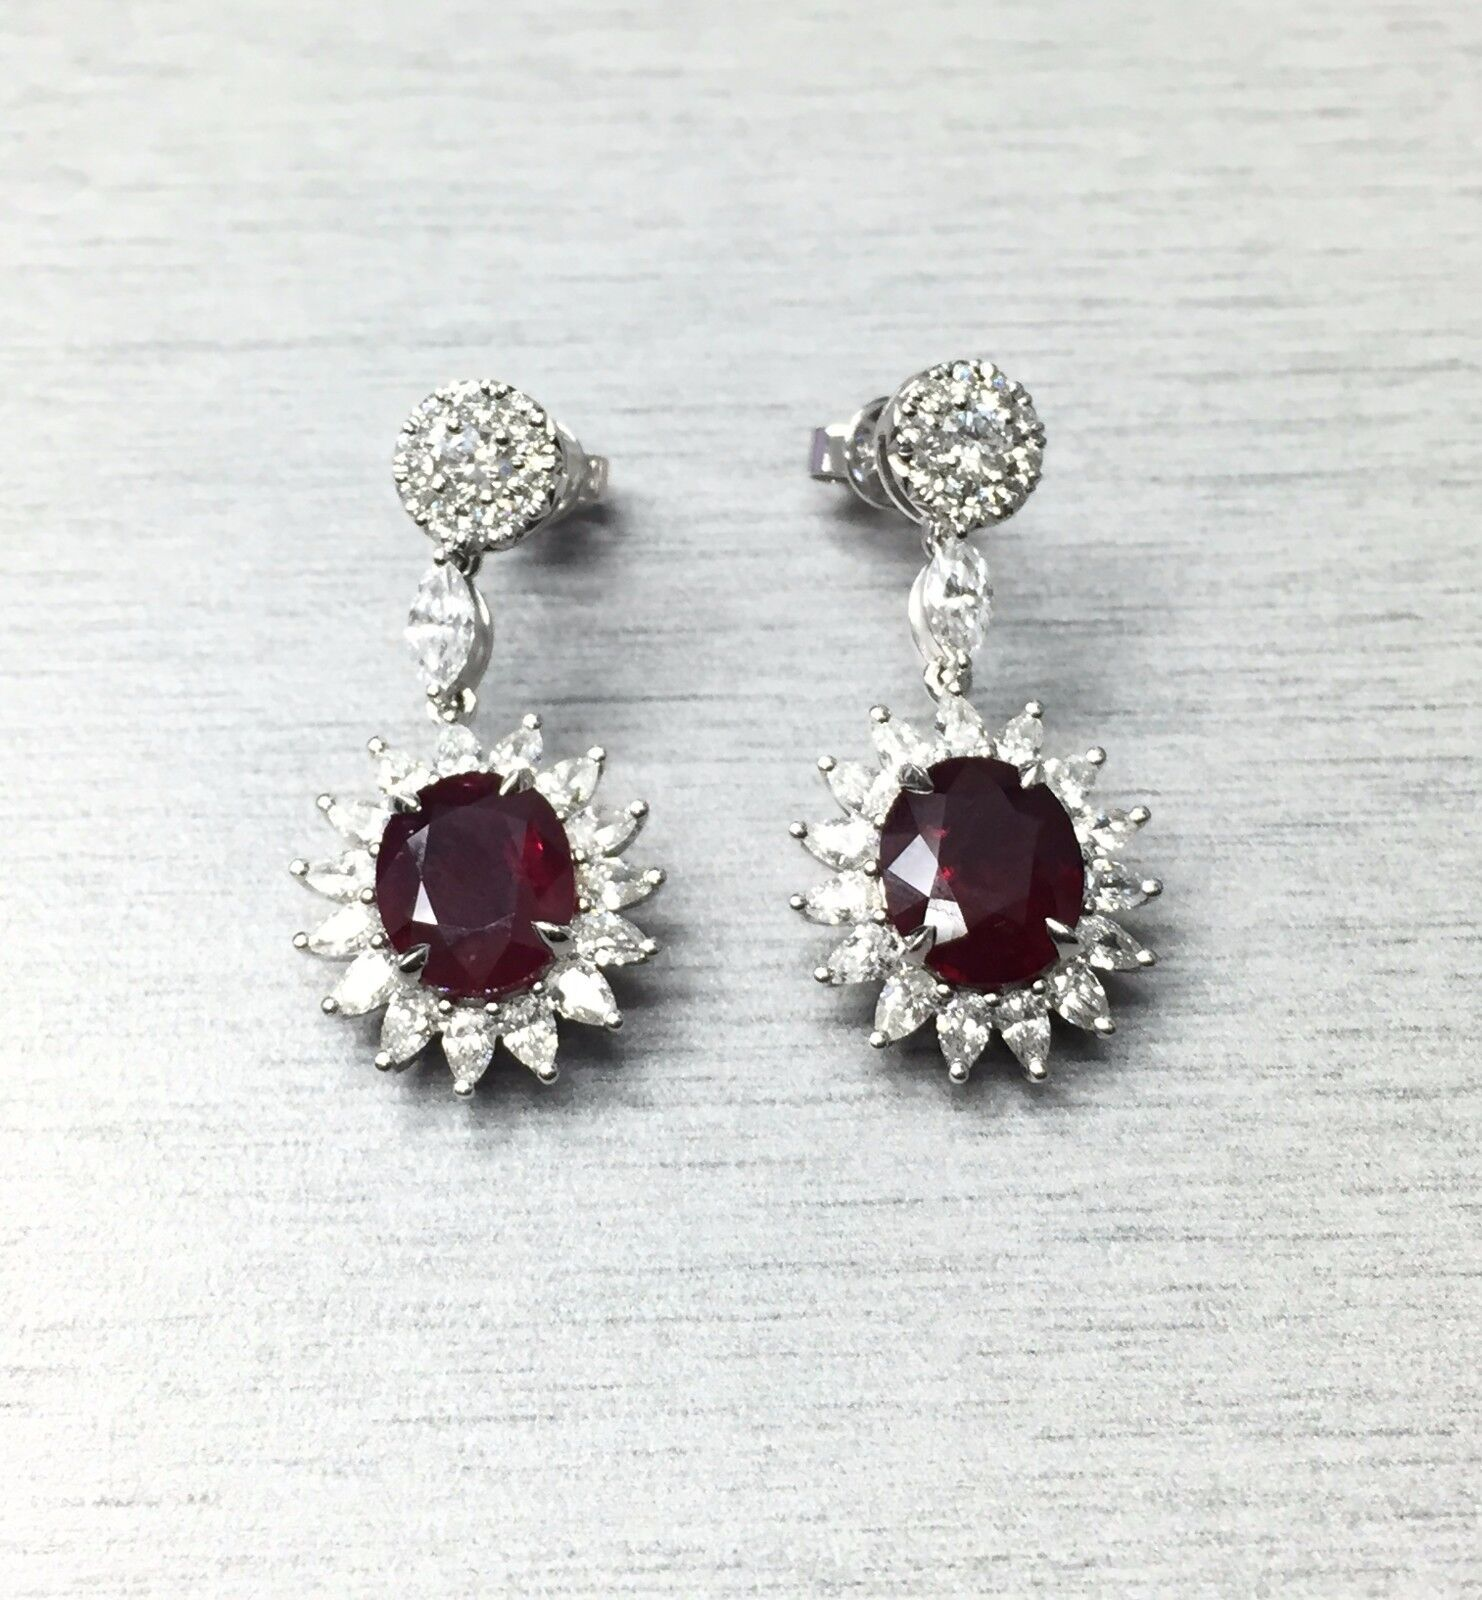 Natural GIA Certified 18K Gold Ruby Earrings with Diamonds 6.72 Carats Rubies 3